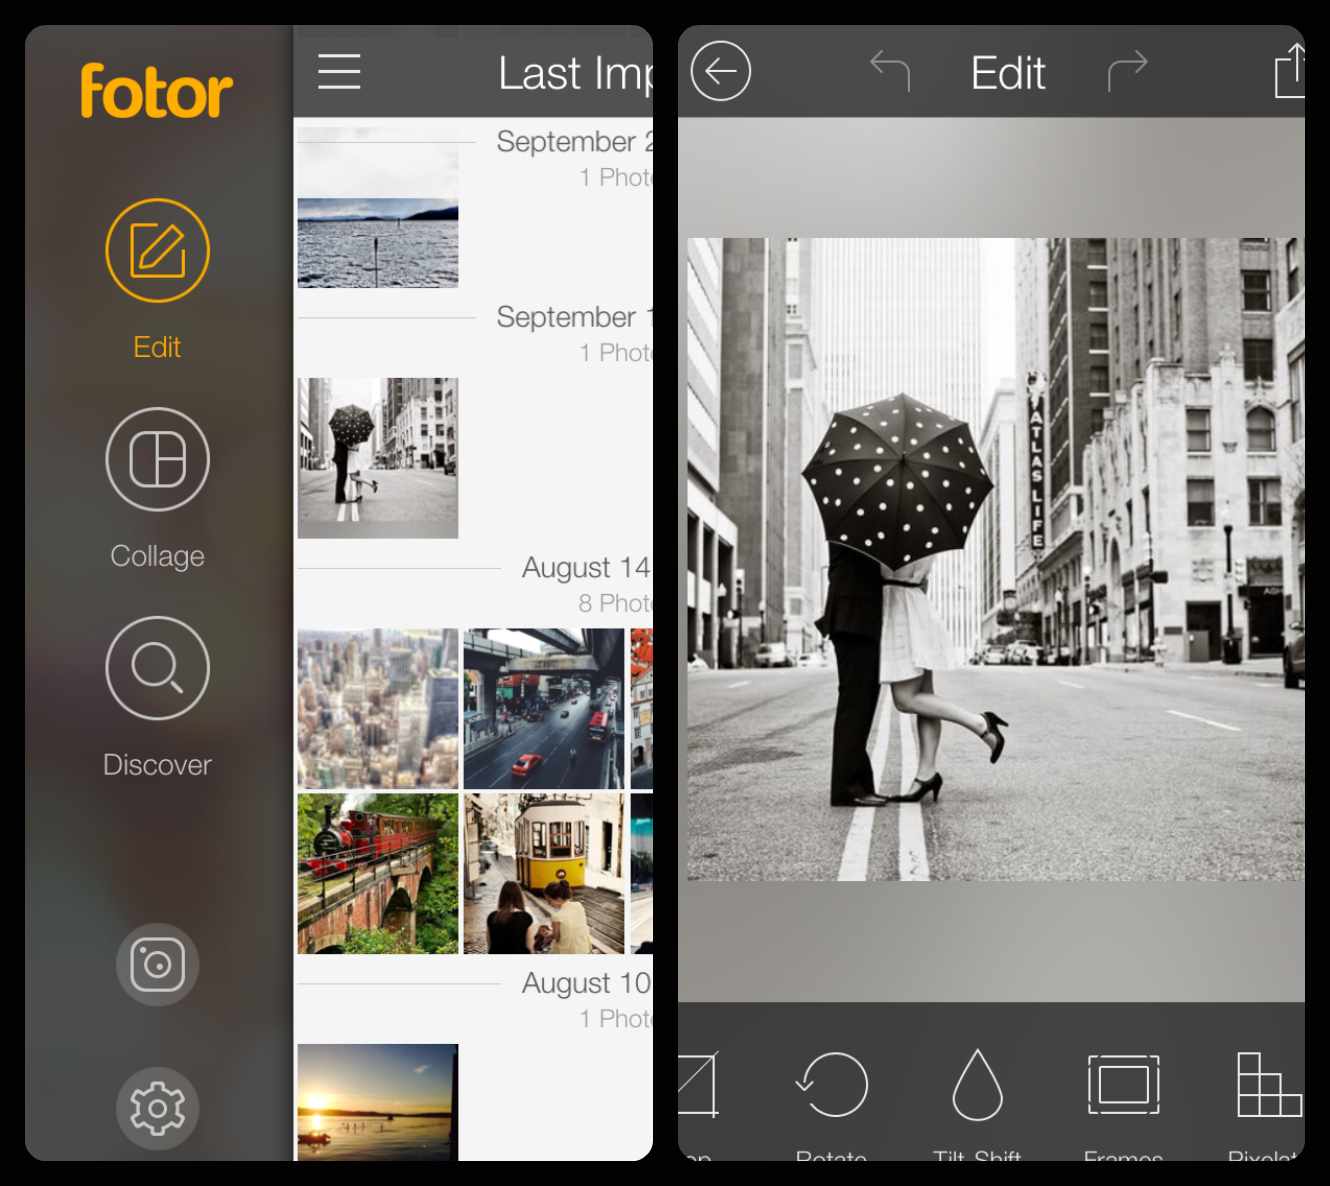 Introducing Pixelate feature for iOS | Fotor's Blog